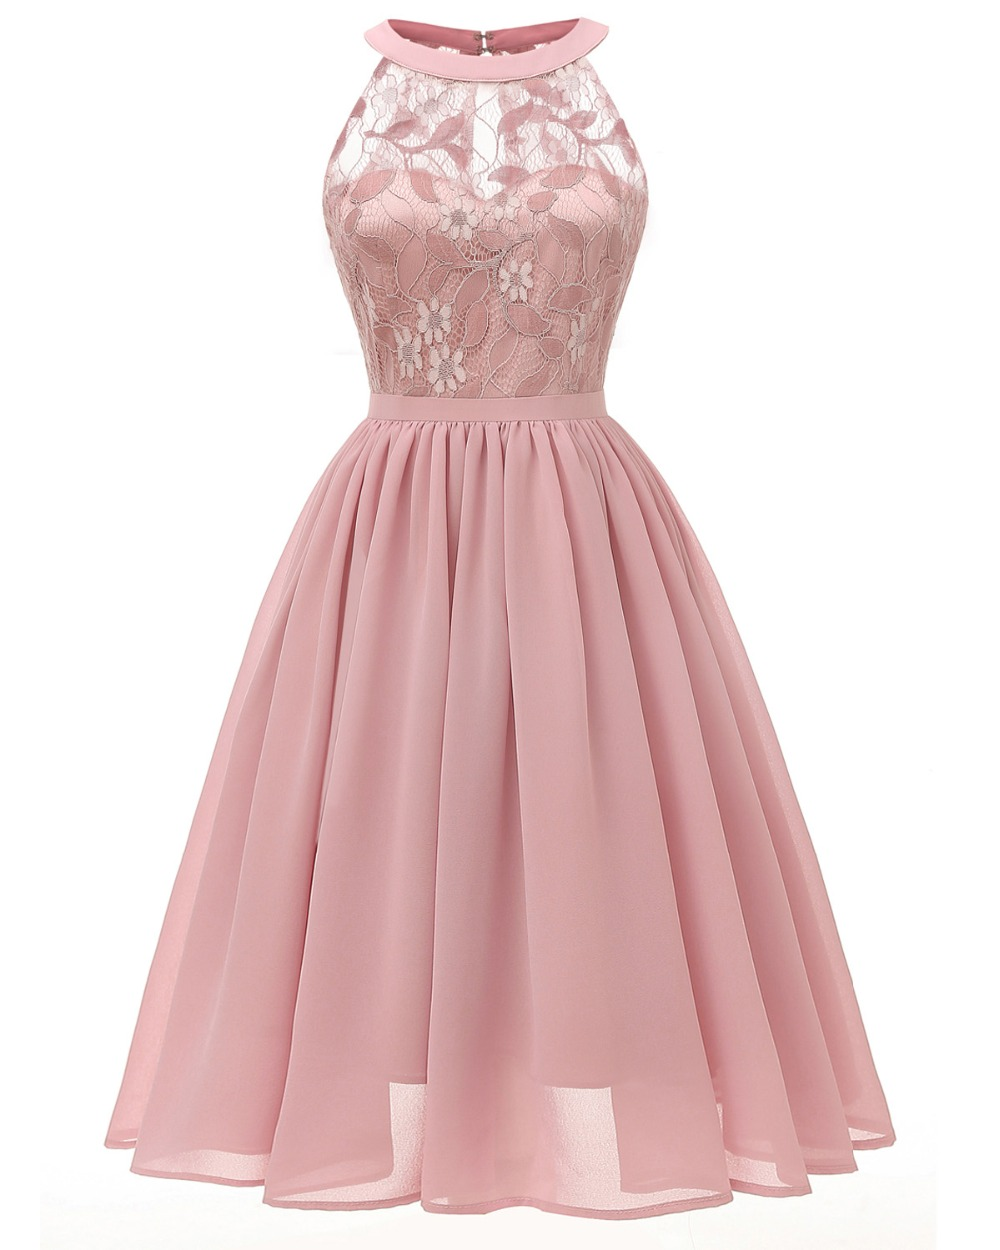 Formal Party Dress 10